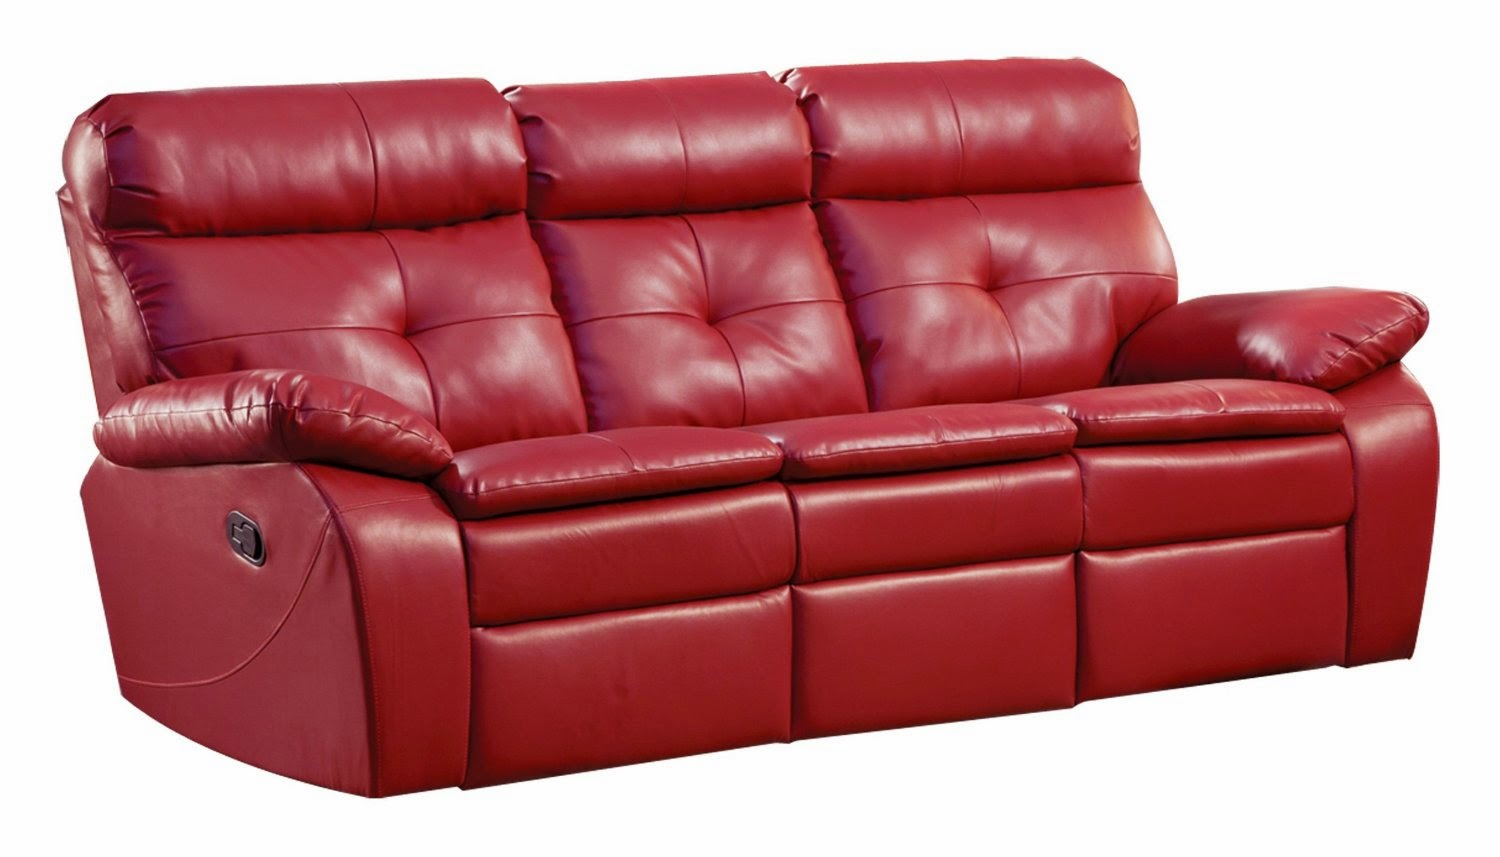 Sectional Sofas With 4 Recliners 4 Seat Reclining Sectional